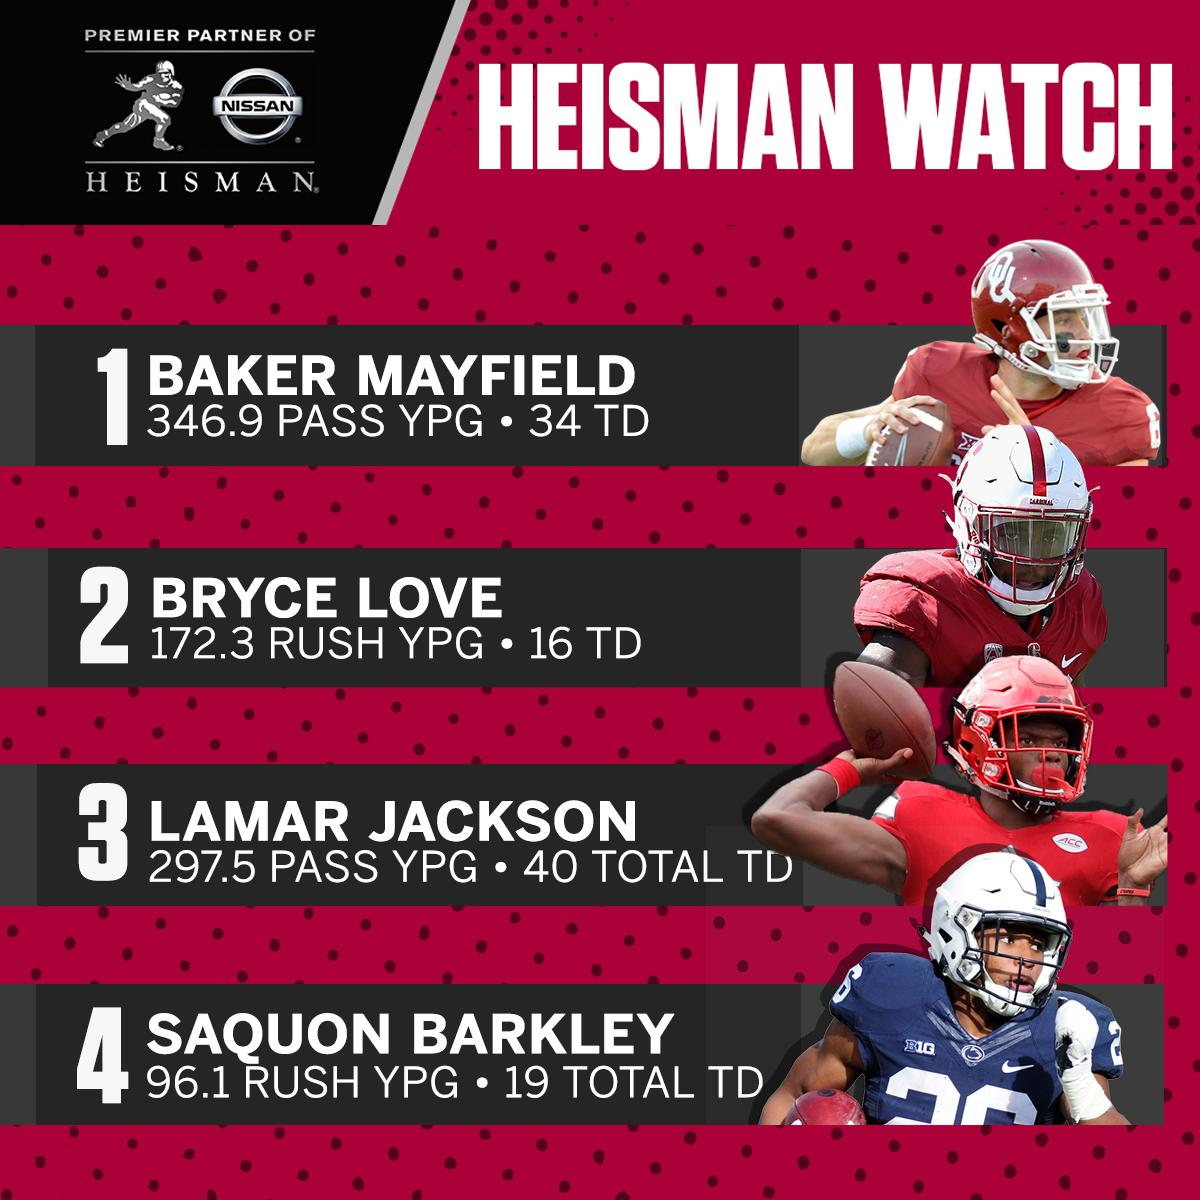 Saquon Barkley is back in the top four in the race for the @NissanUSA #HeismanHouse. https://t.co/oNApW1R4Ls